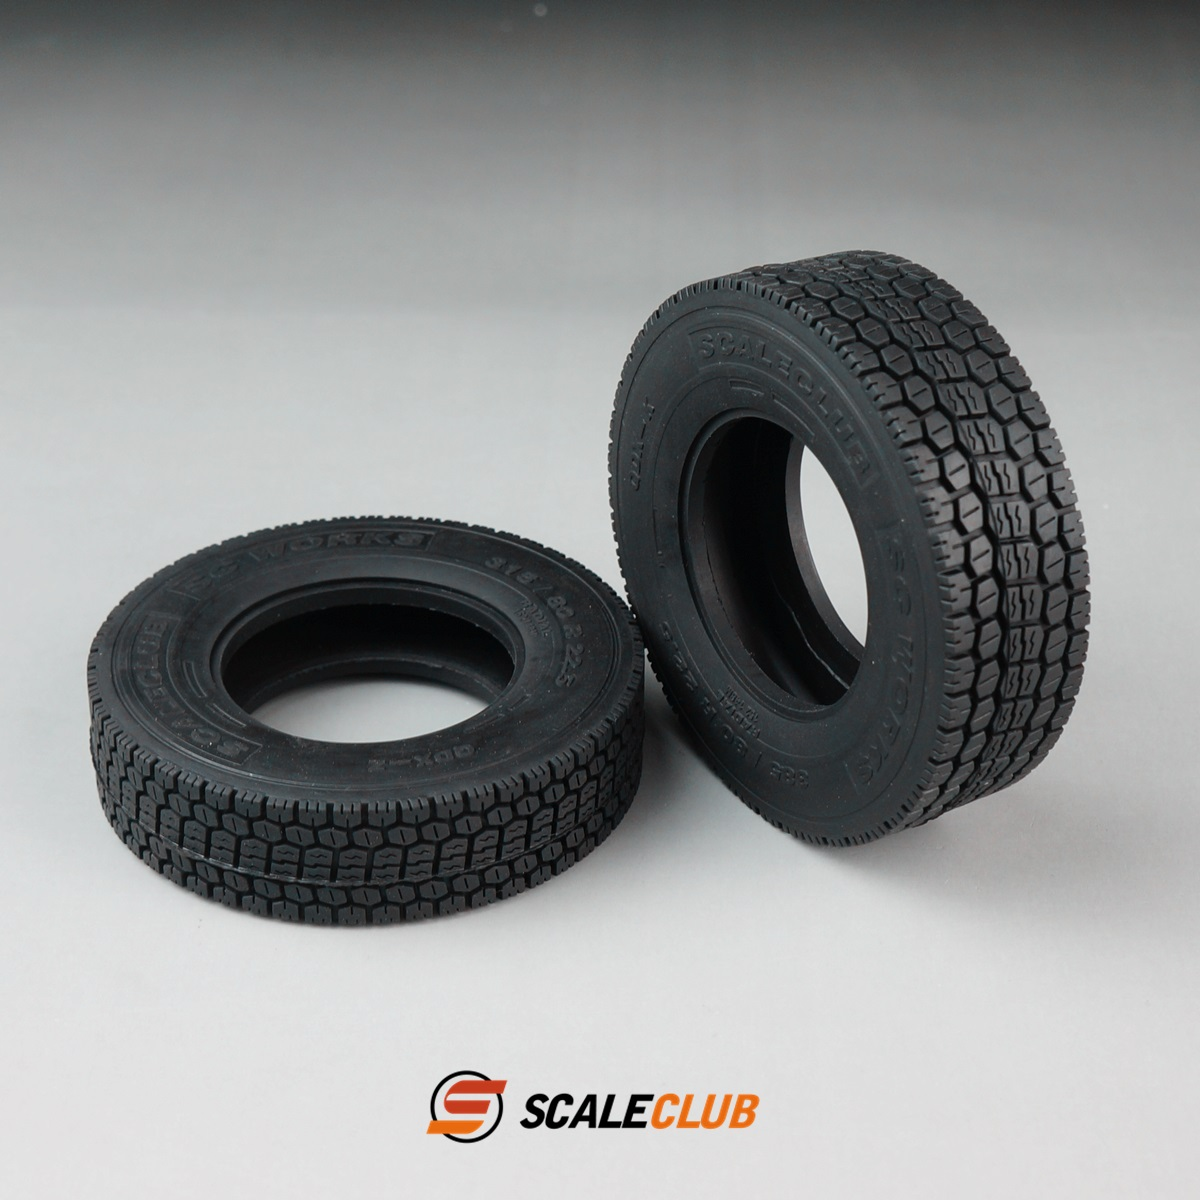 SCALECLUB  1/14 Universal  Tire skin of all terrain highway